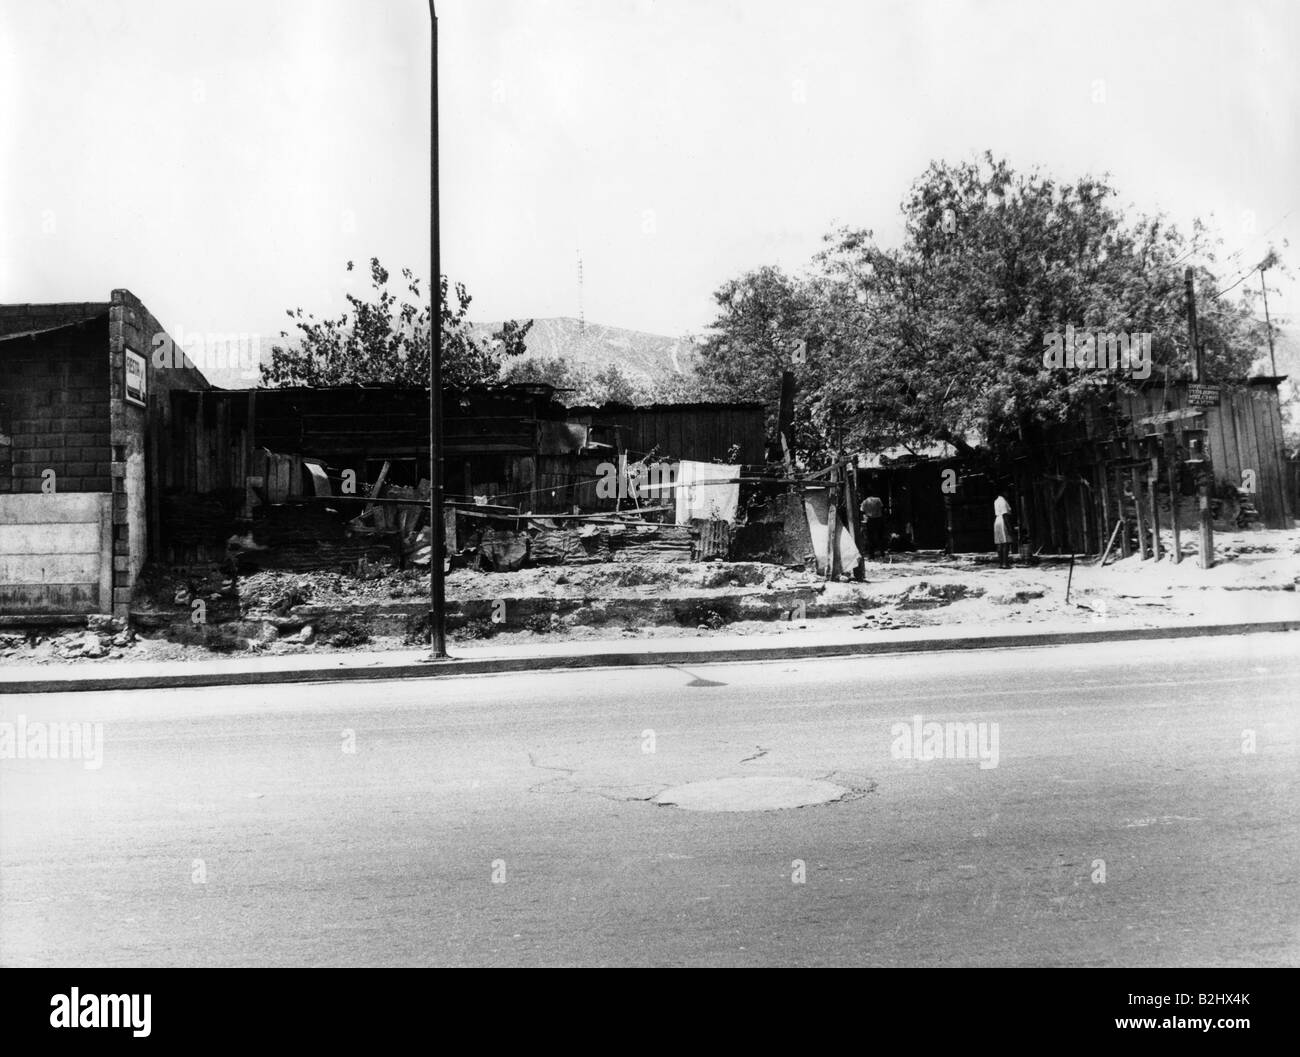 geography / travel, Mexico, Monterrey, street scenes, huts at street, 1971, Additional-Rights-Clearances-NA - Stock Image